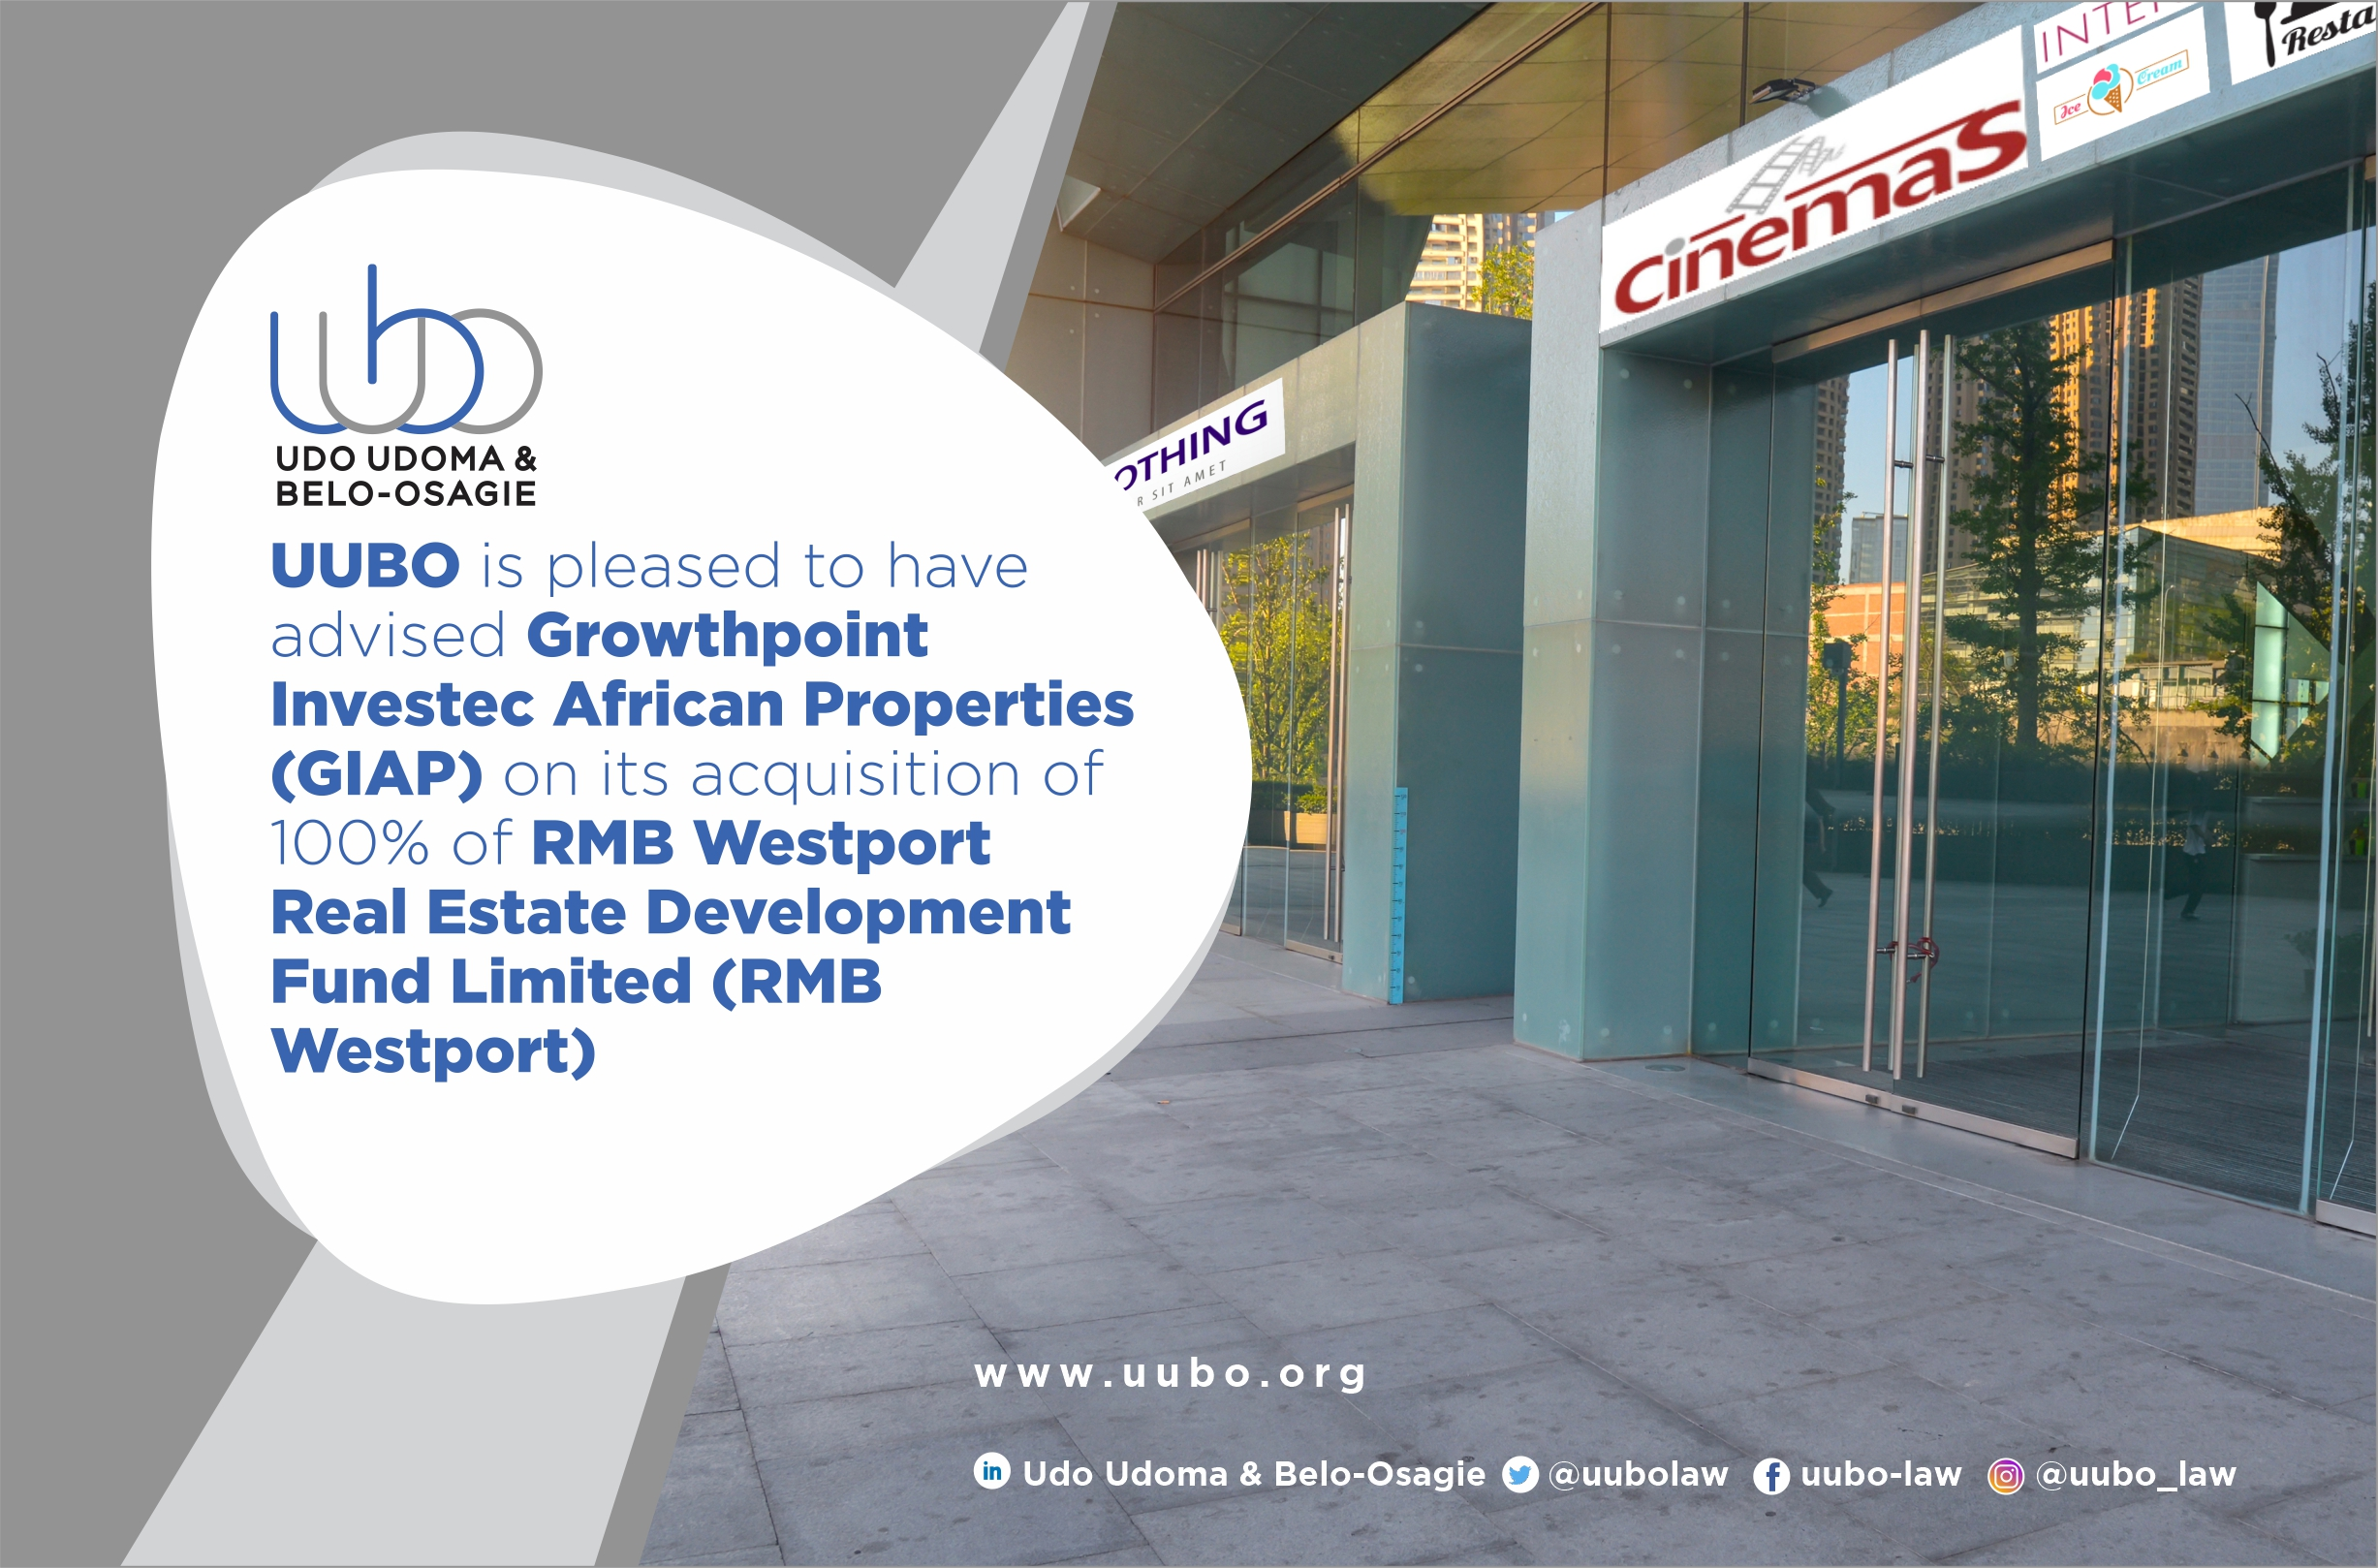 Acquisition of 100% of RMB Westport Real Estate Development Fund Limited (RMB Westport) by Growthpoint Investec African Properties (GIAP)